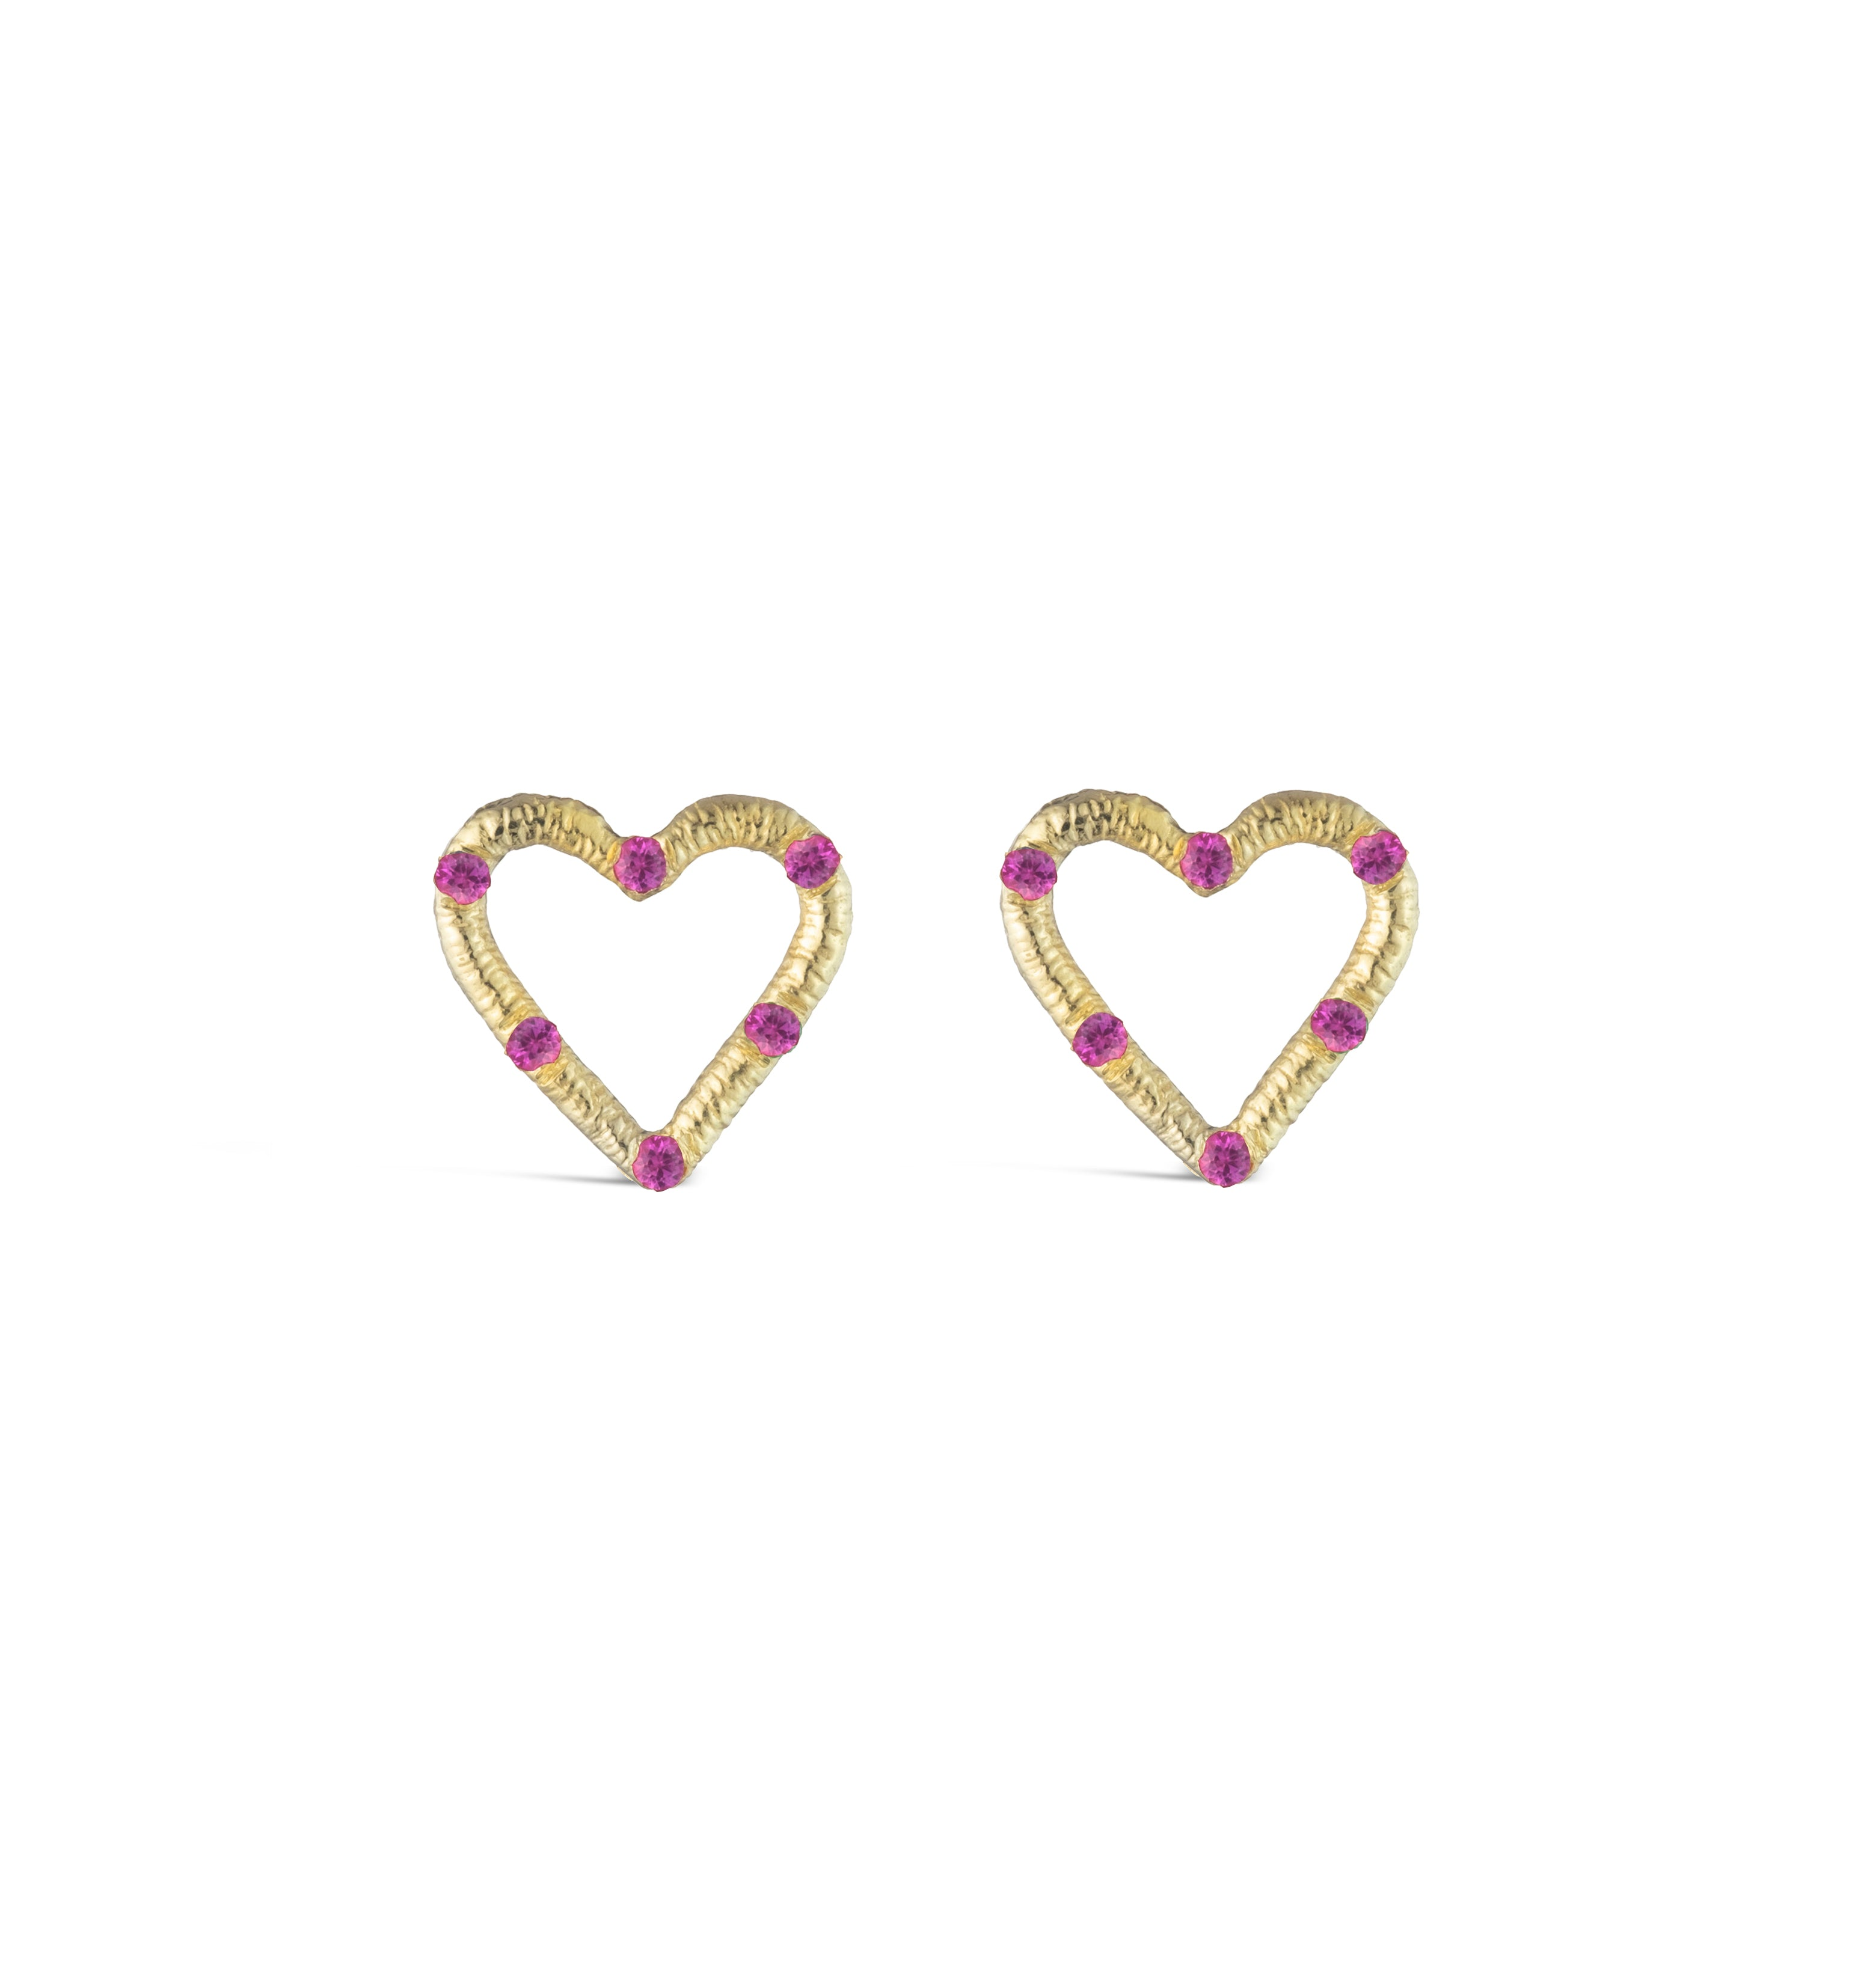 Mini Textured Heart Studs with Precious Stones